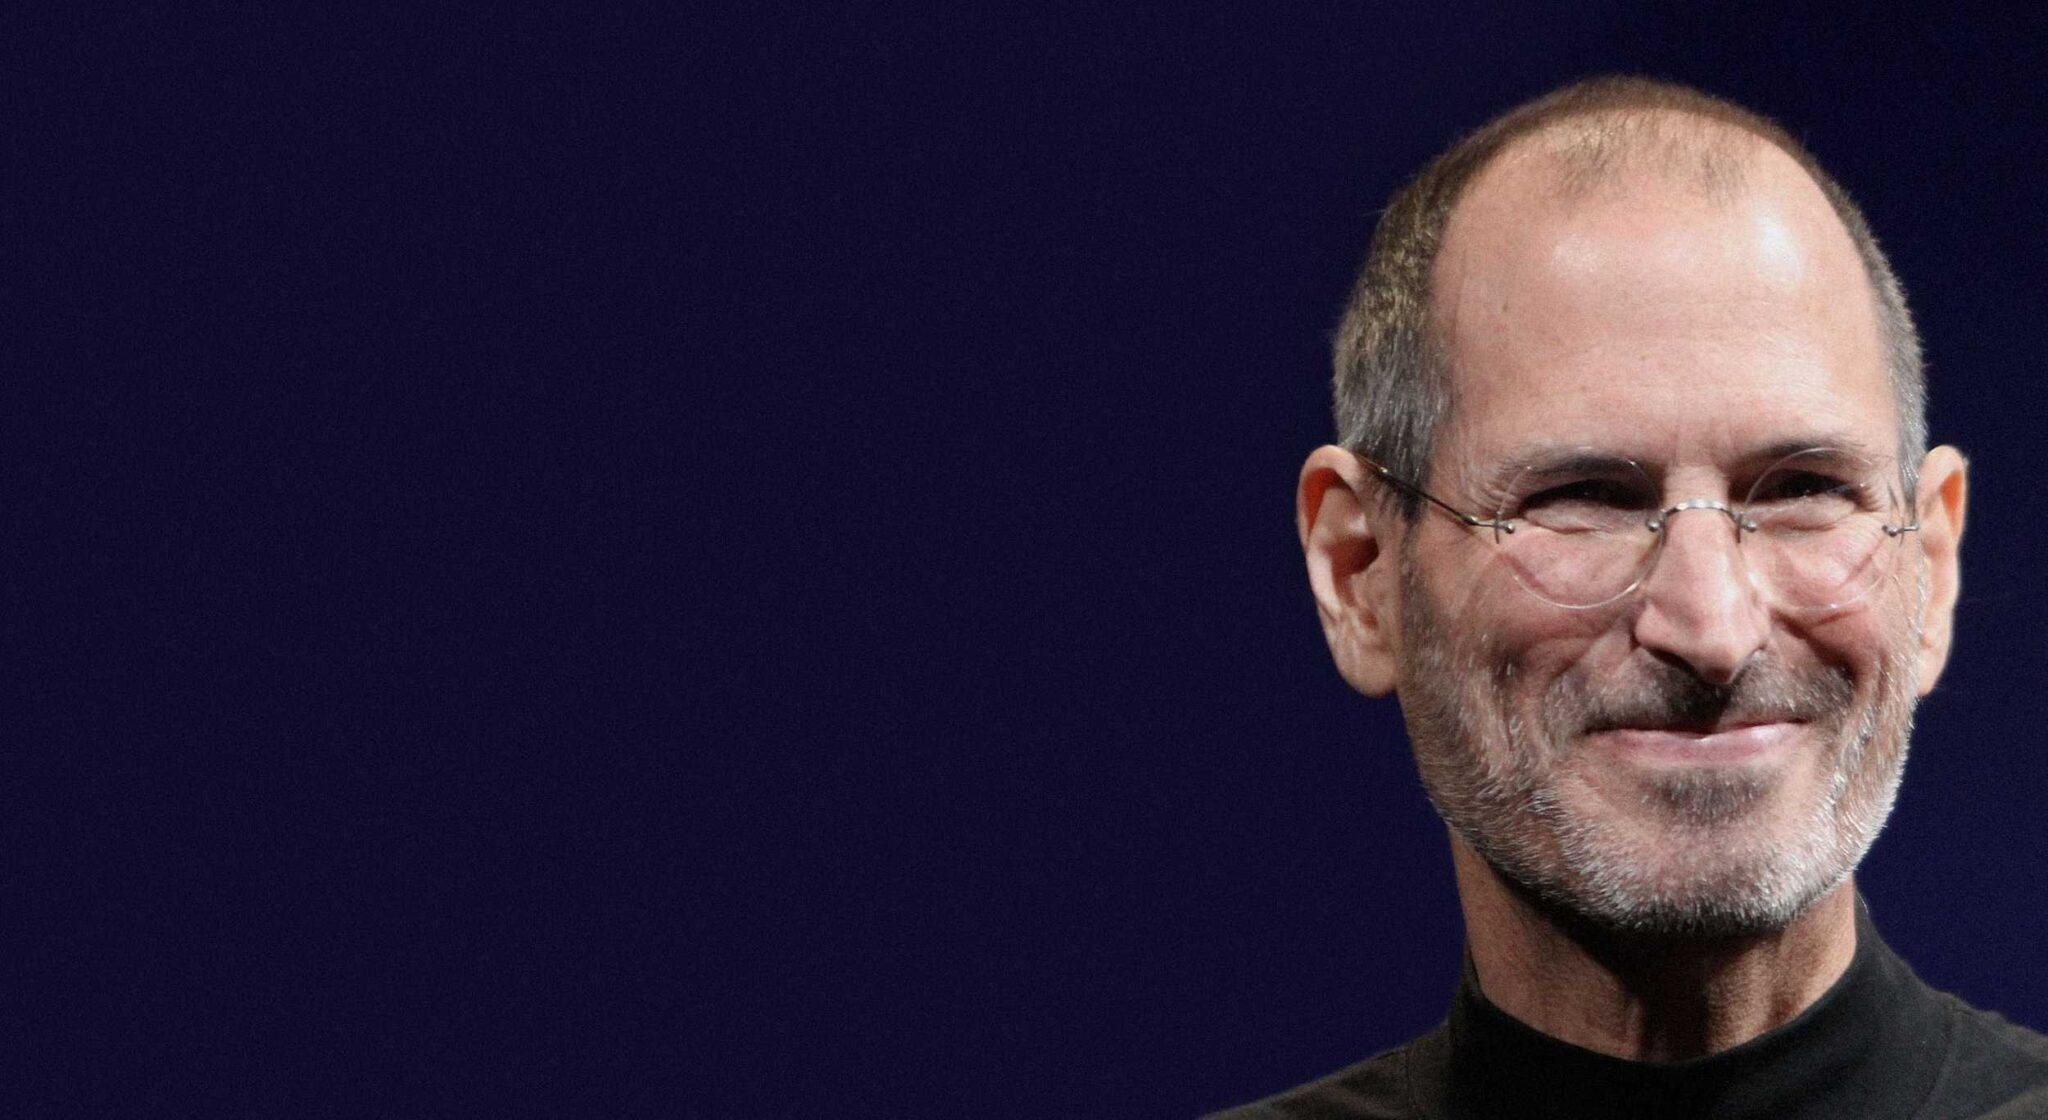 Steve Jobs Said 1 Thing Separates Successful People From Everyone Else (and Will Make All the Difference In Your Life)